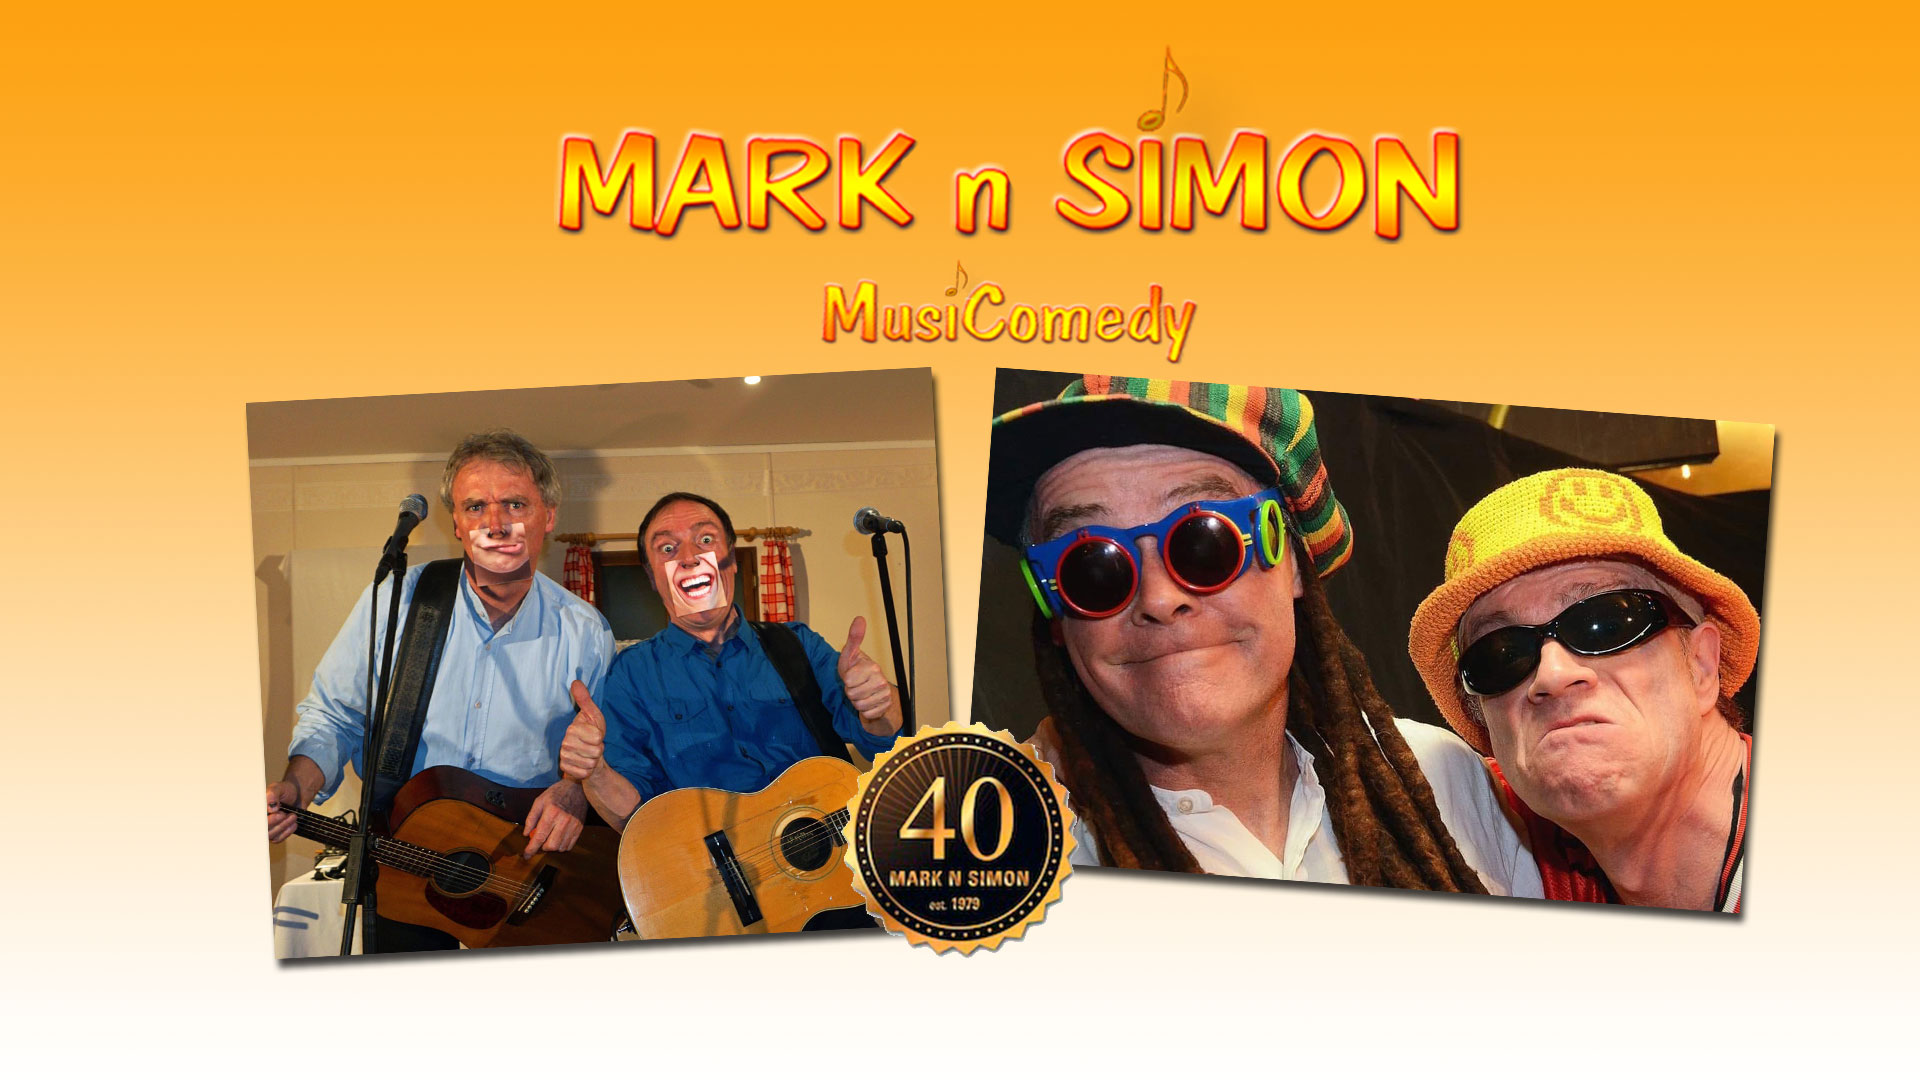 40 Jahre Mark 'n' Simon - MusiComedy